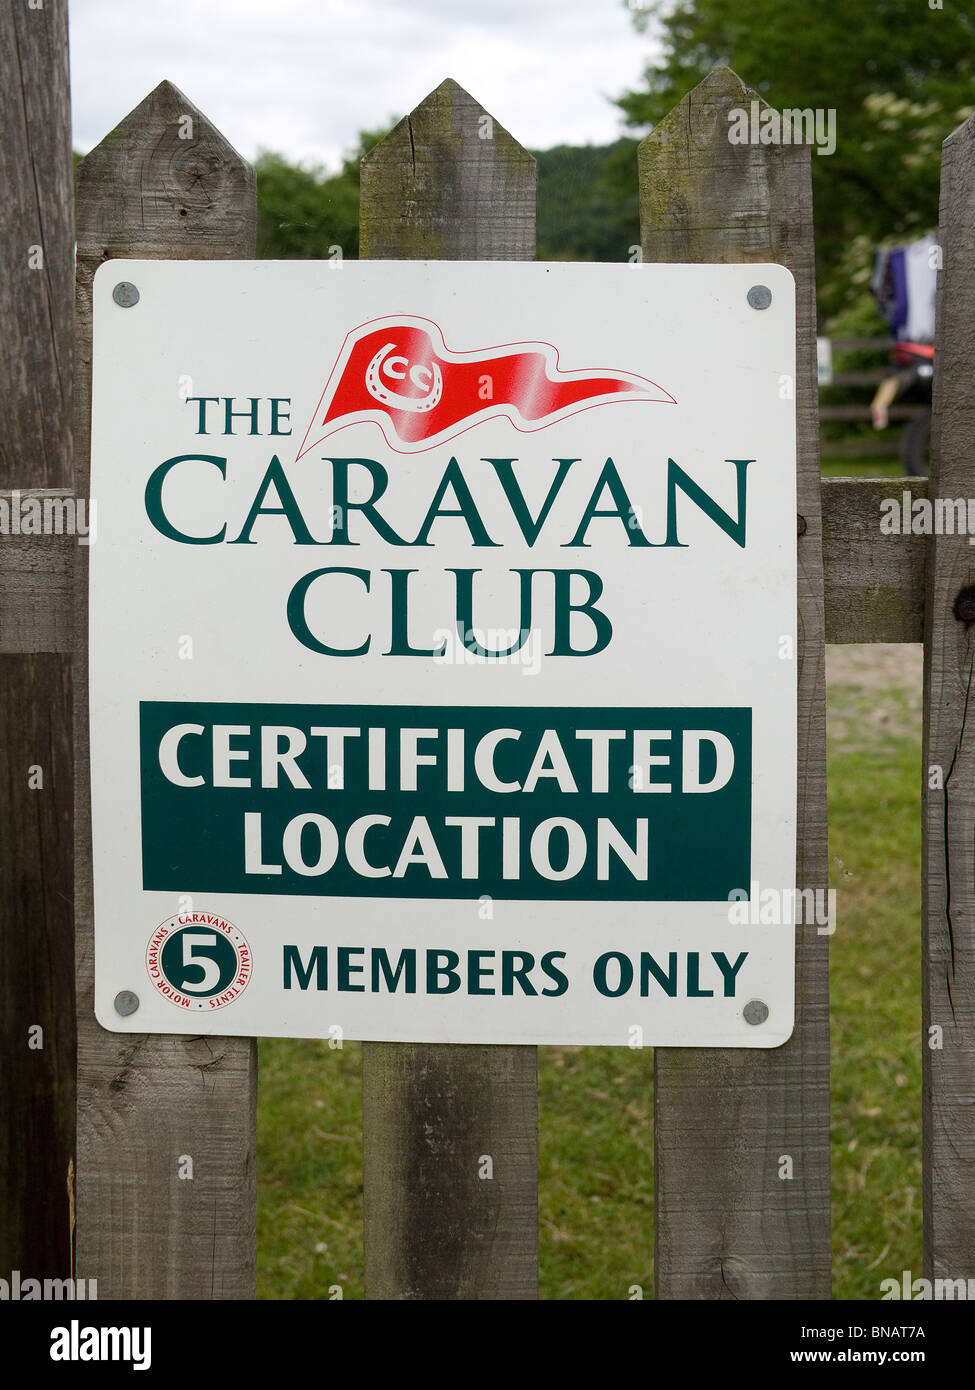 A Sign For A Caravan Club Certificated Location For Only Five